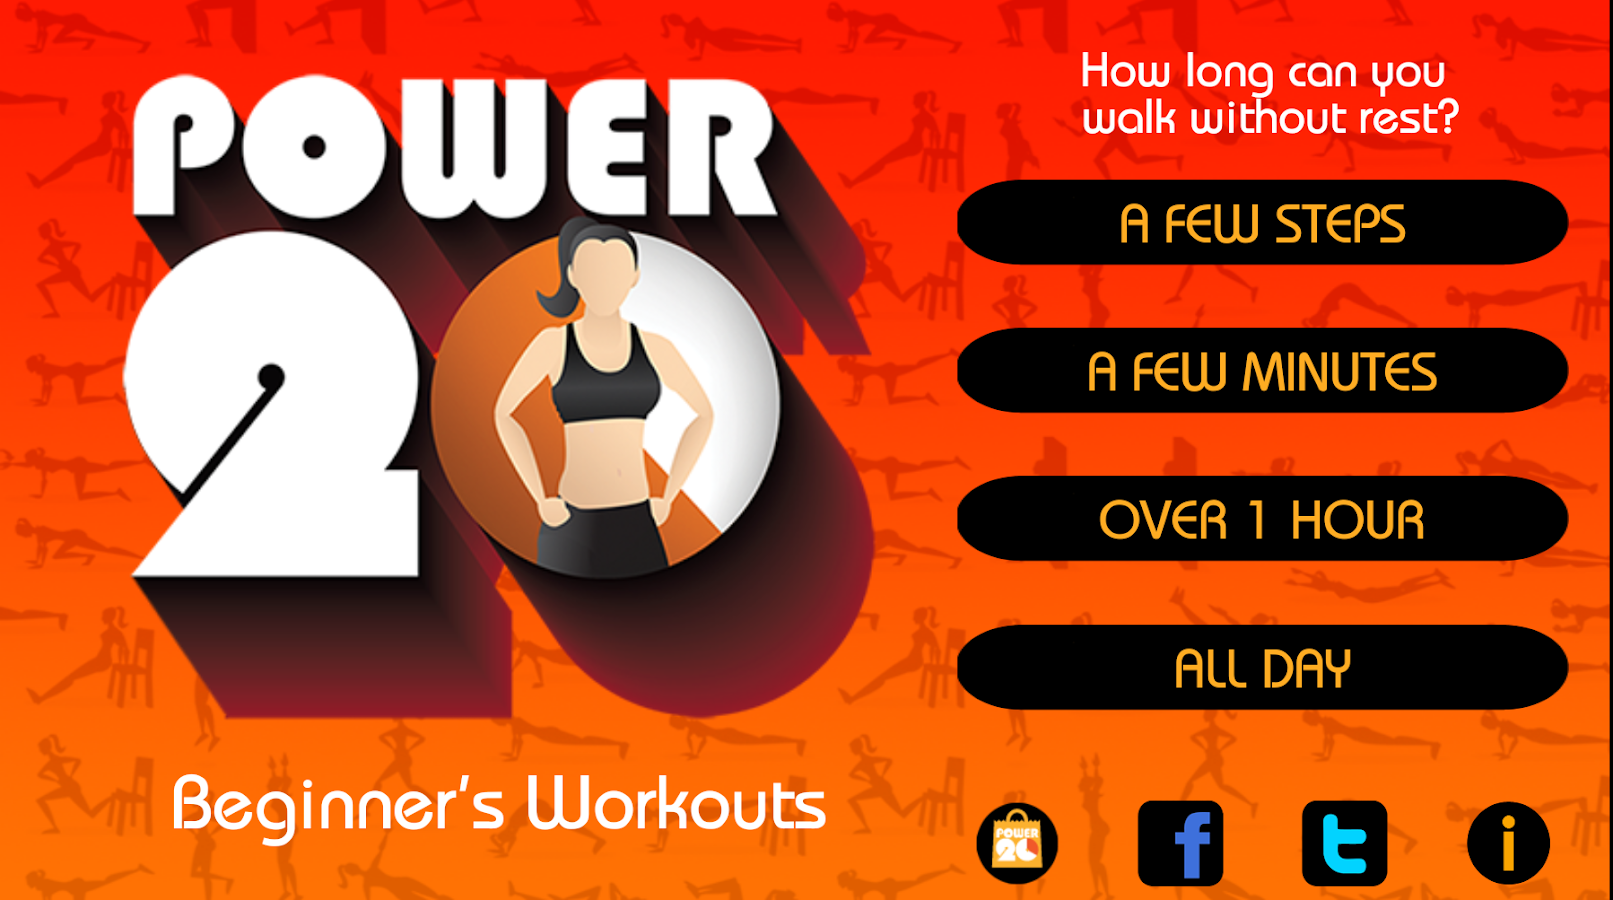 20 Minute Beginners Workout Screenshot 6